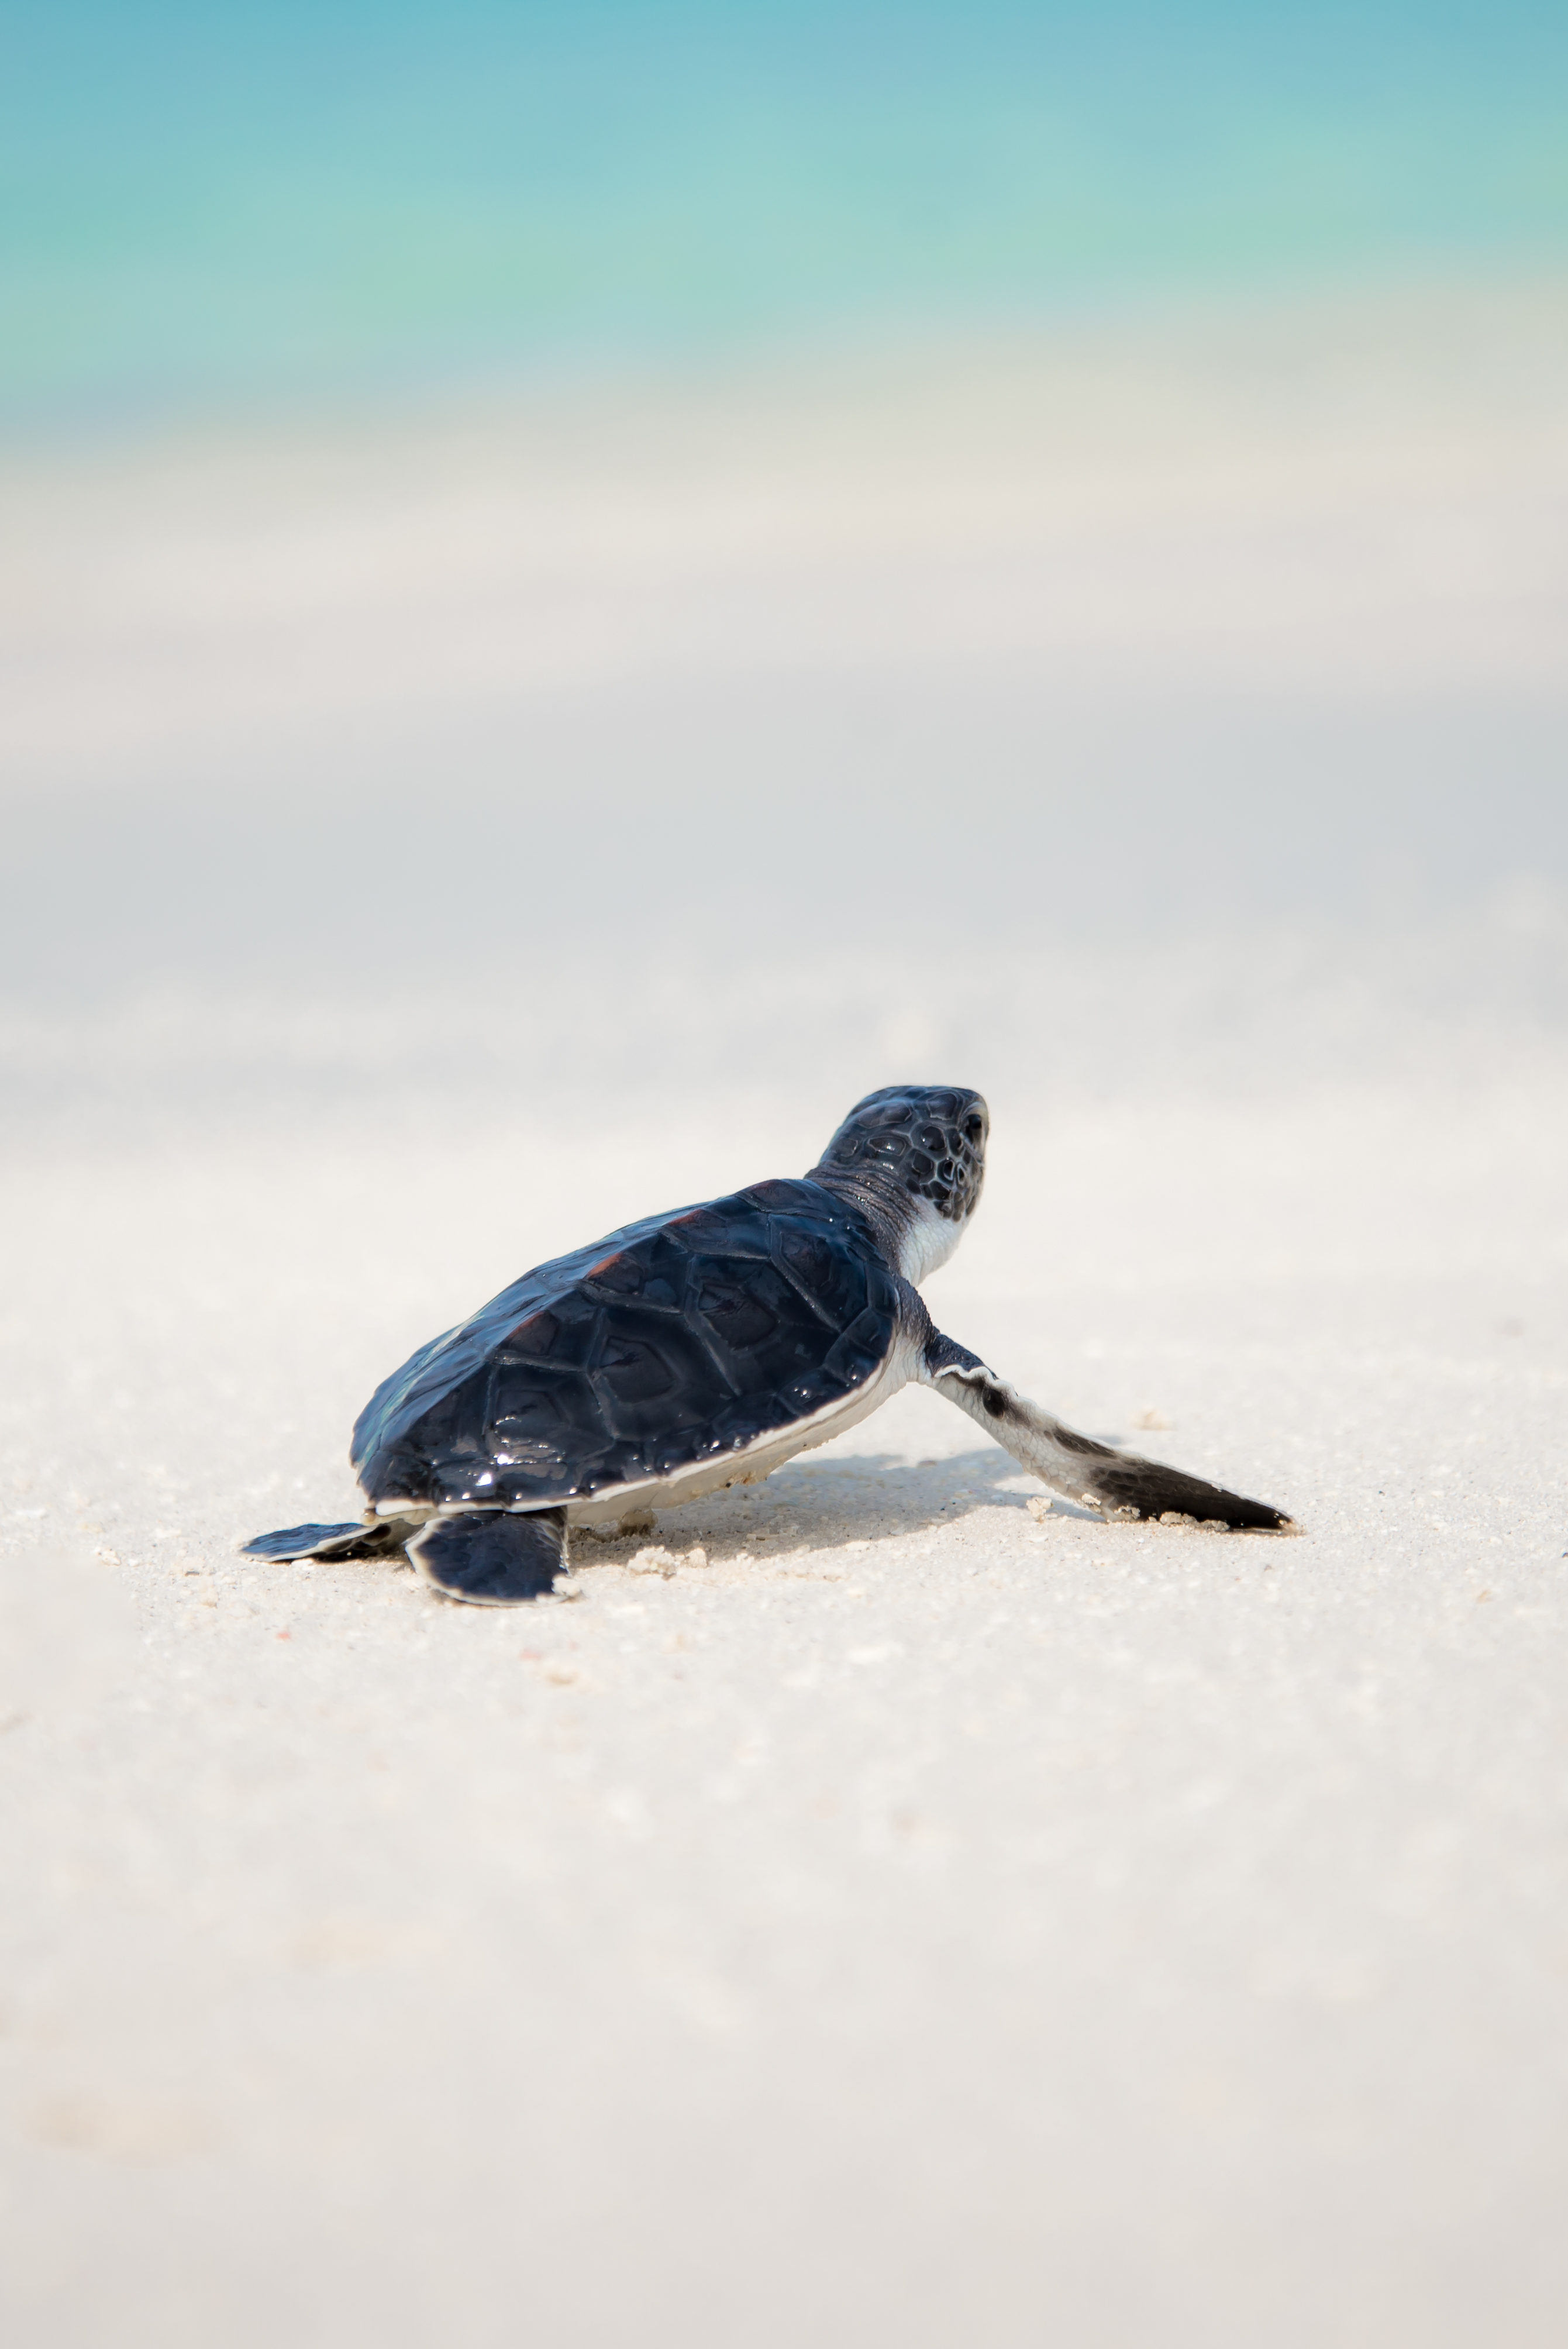 Sea Turtles Wallpaper 500 Turtle Pictures Download Free Images On Unsplash